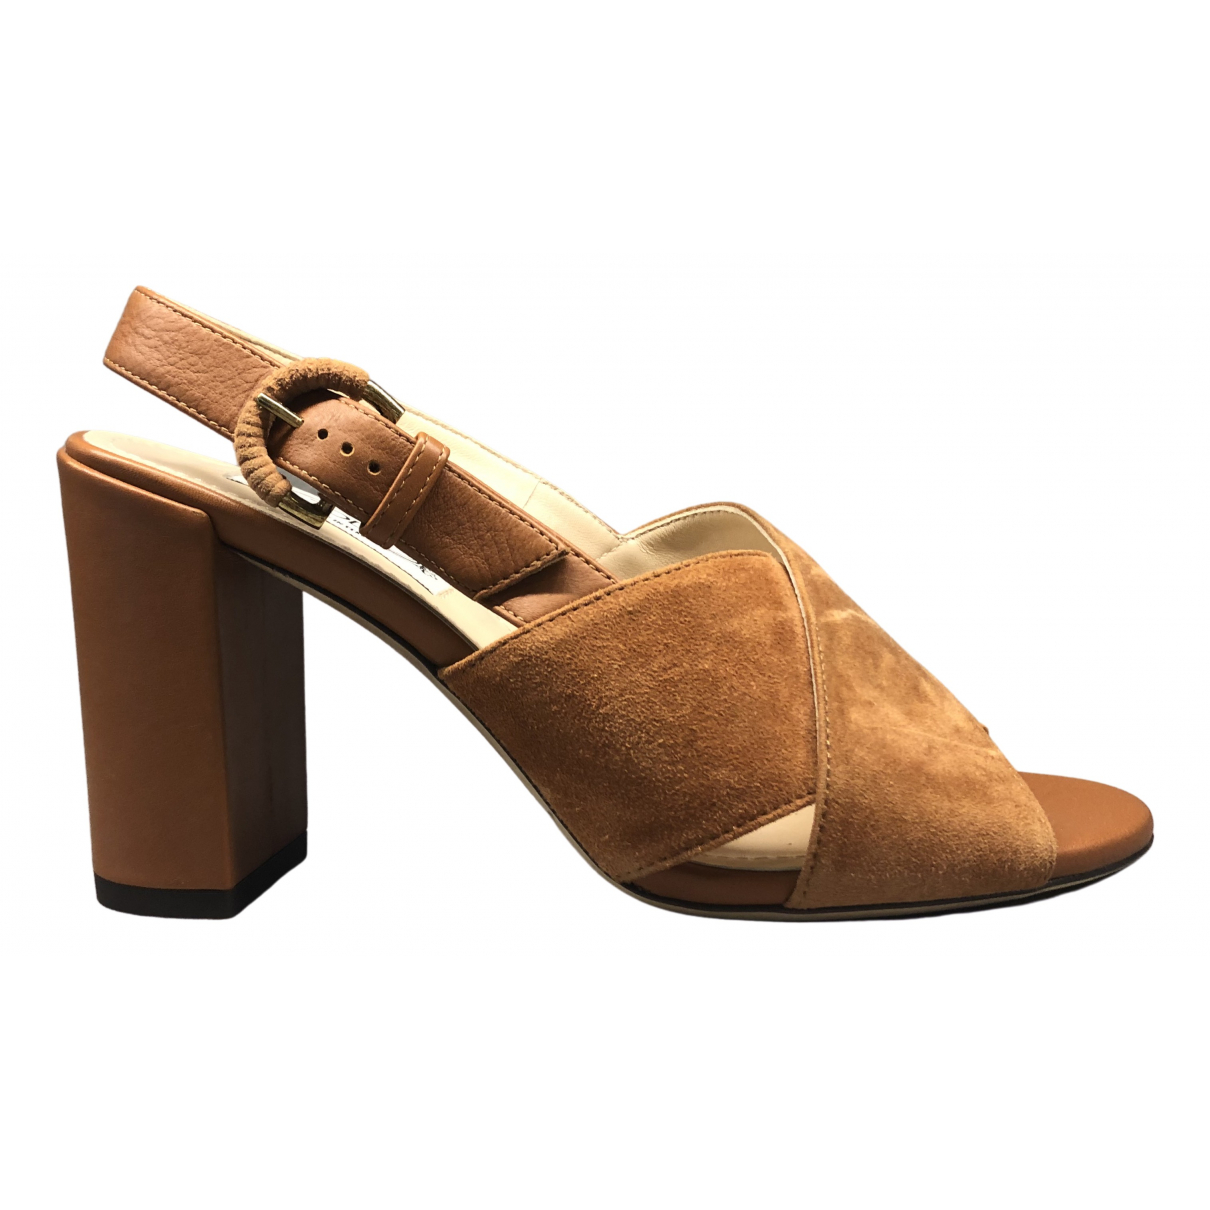 Tod's \N Camel Suede Sandals for Women 37 EU